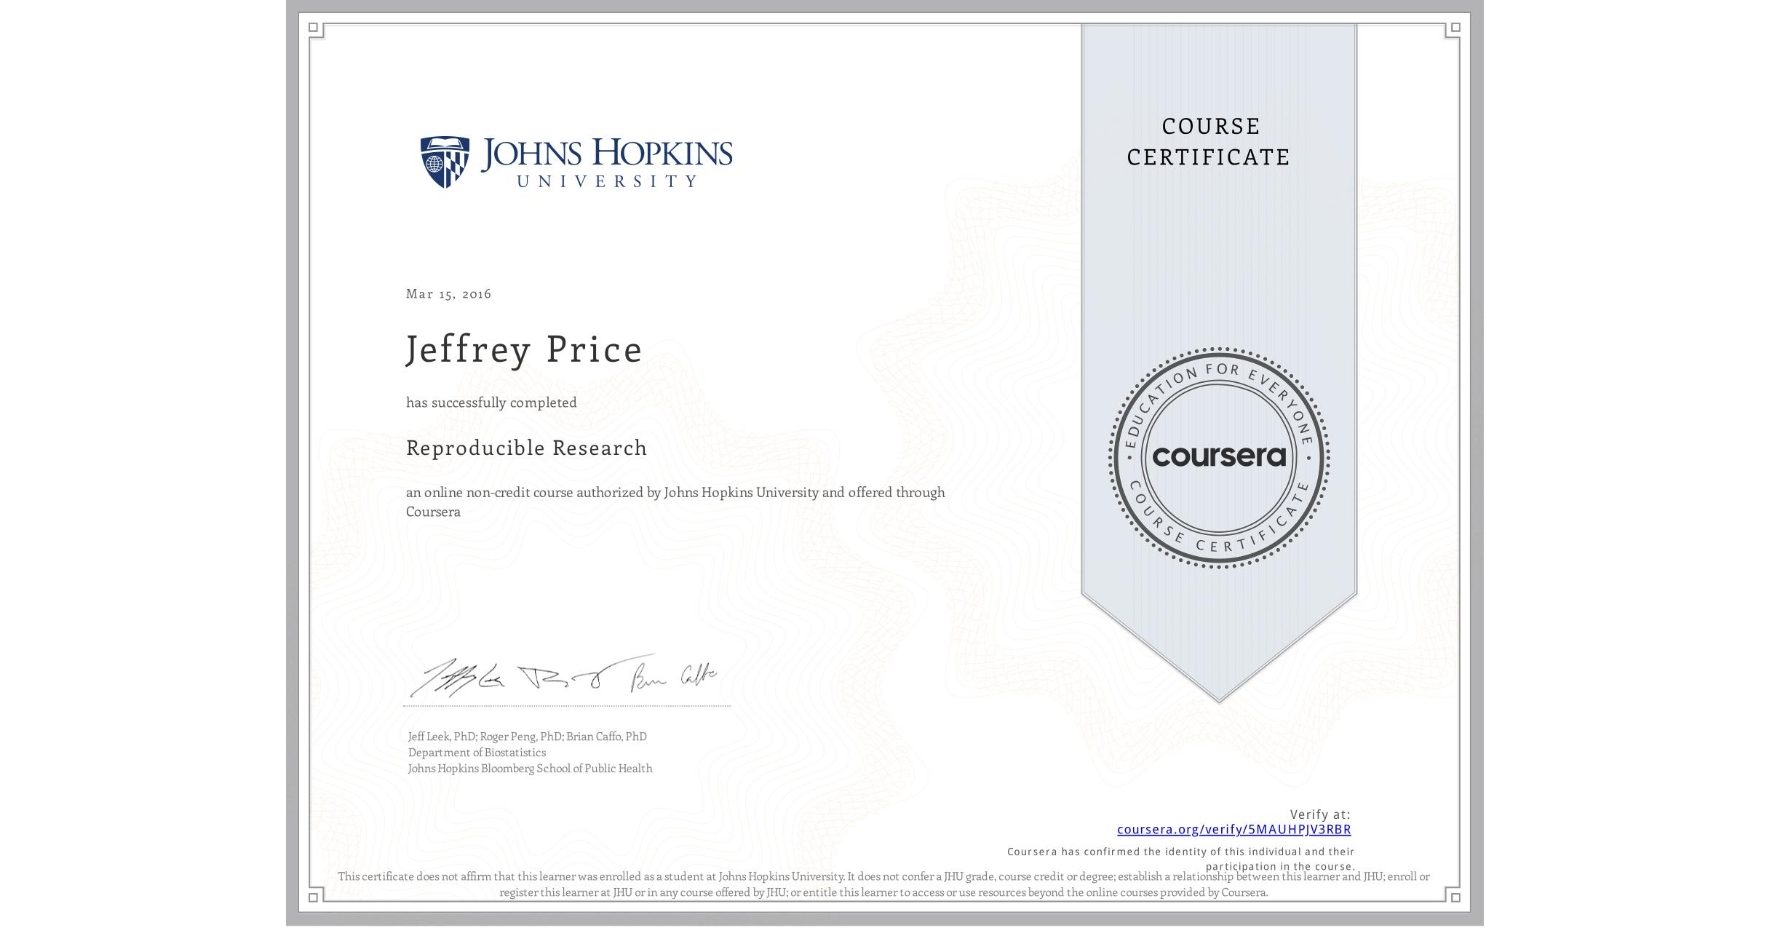 View certificate for Jeffrey Price, Reproducible Research, an online non-credit course authorized by Johns Hopkins University and offered through Coursera